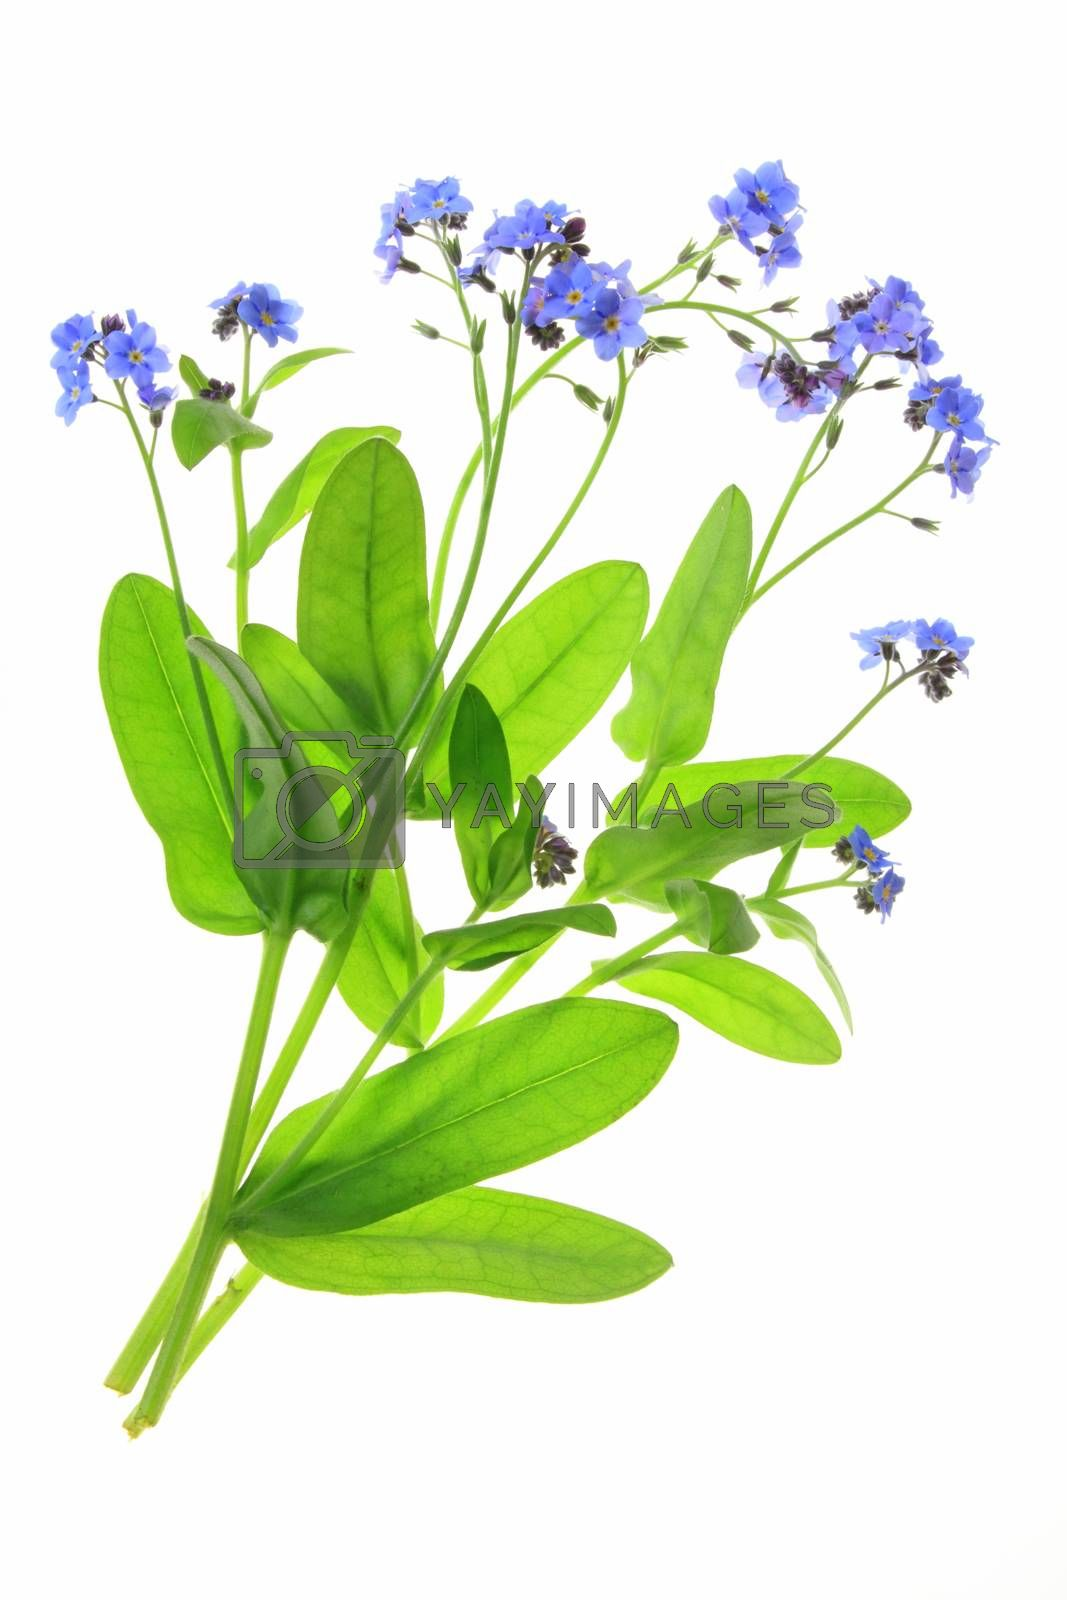 Royalty free image of Forget-me-not by jopelka